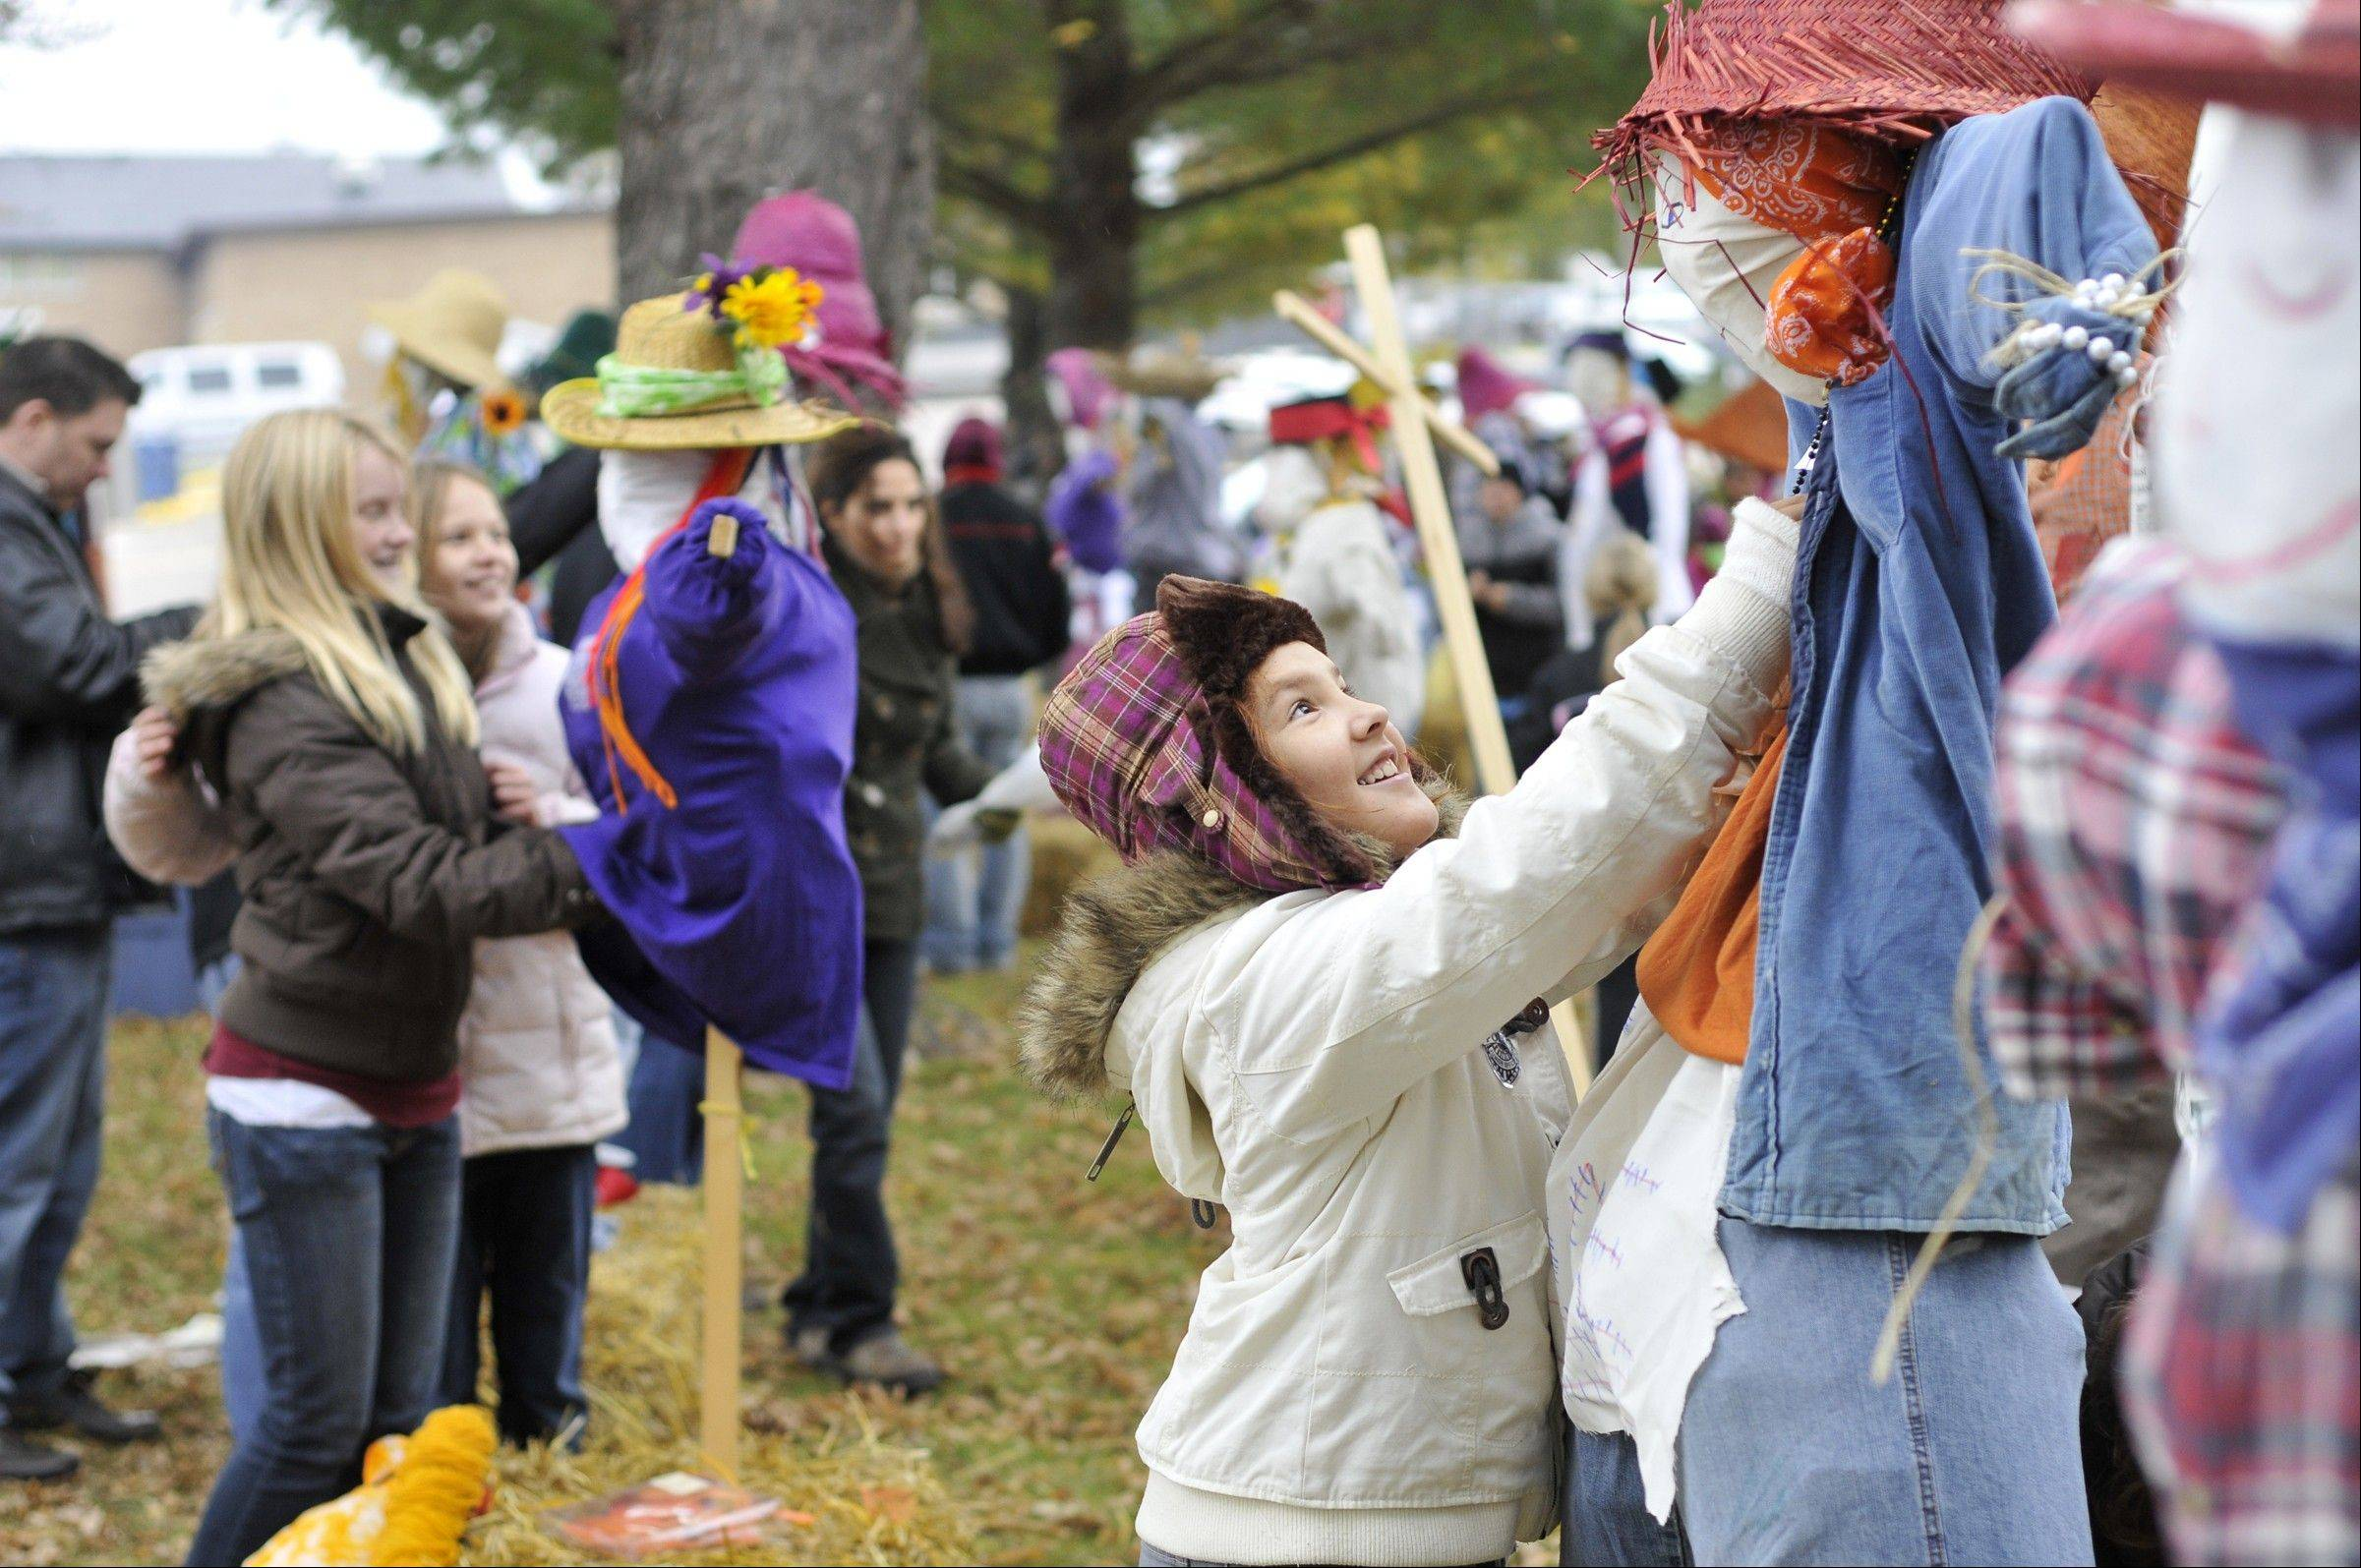 Families swarm the Wisconsin Dells Oct. 13-14 for fall fun during the Autumn Harvest Festival.